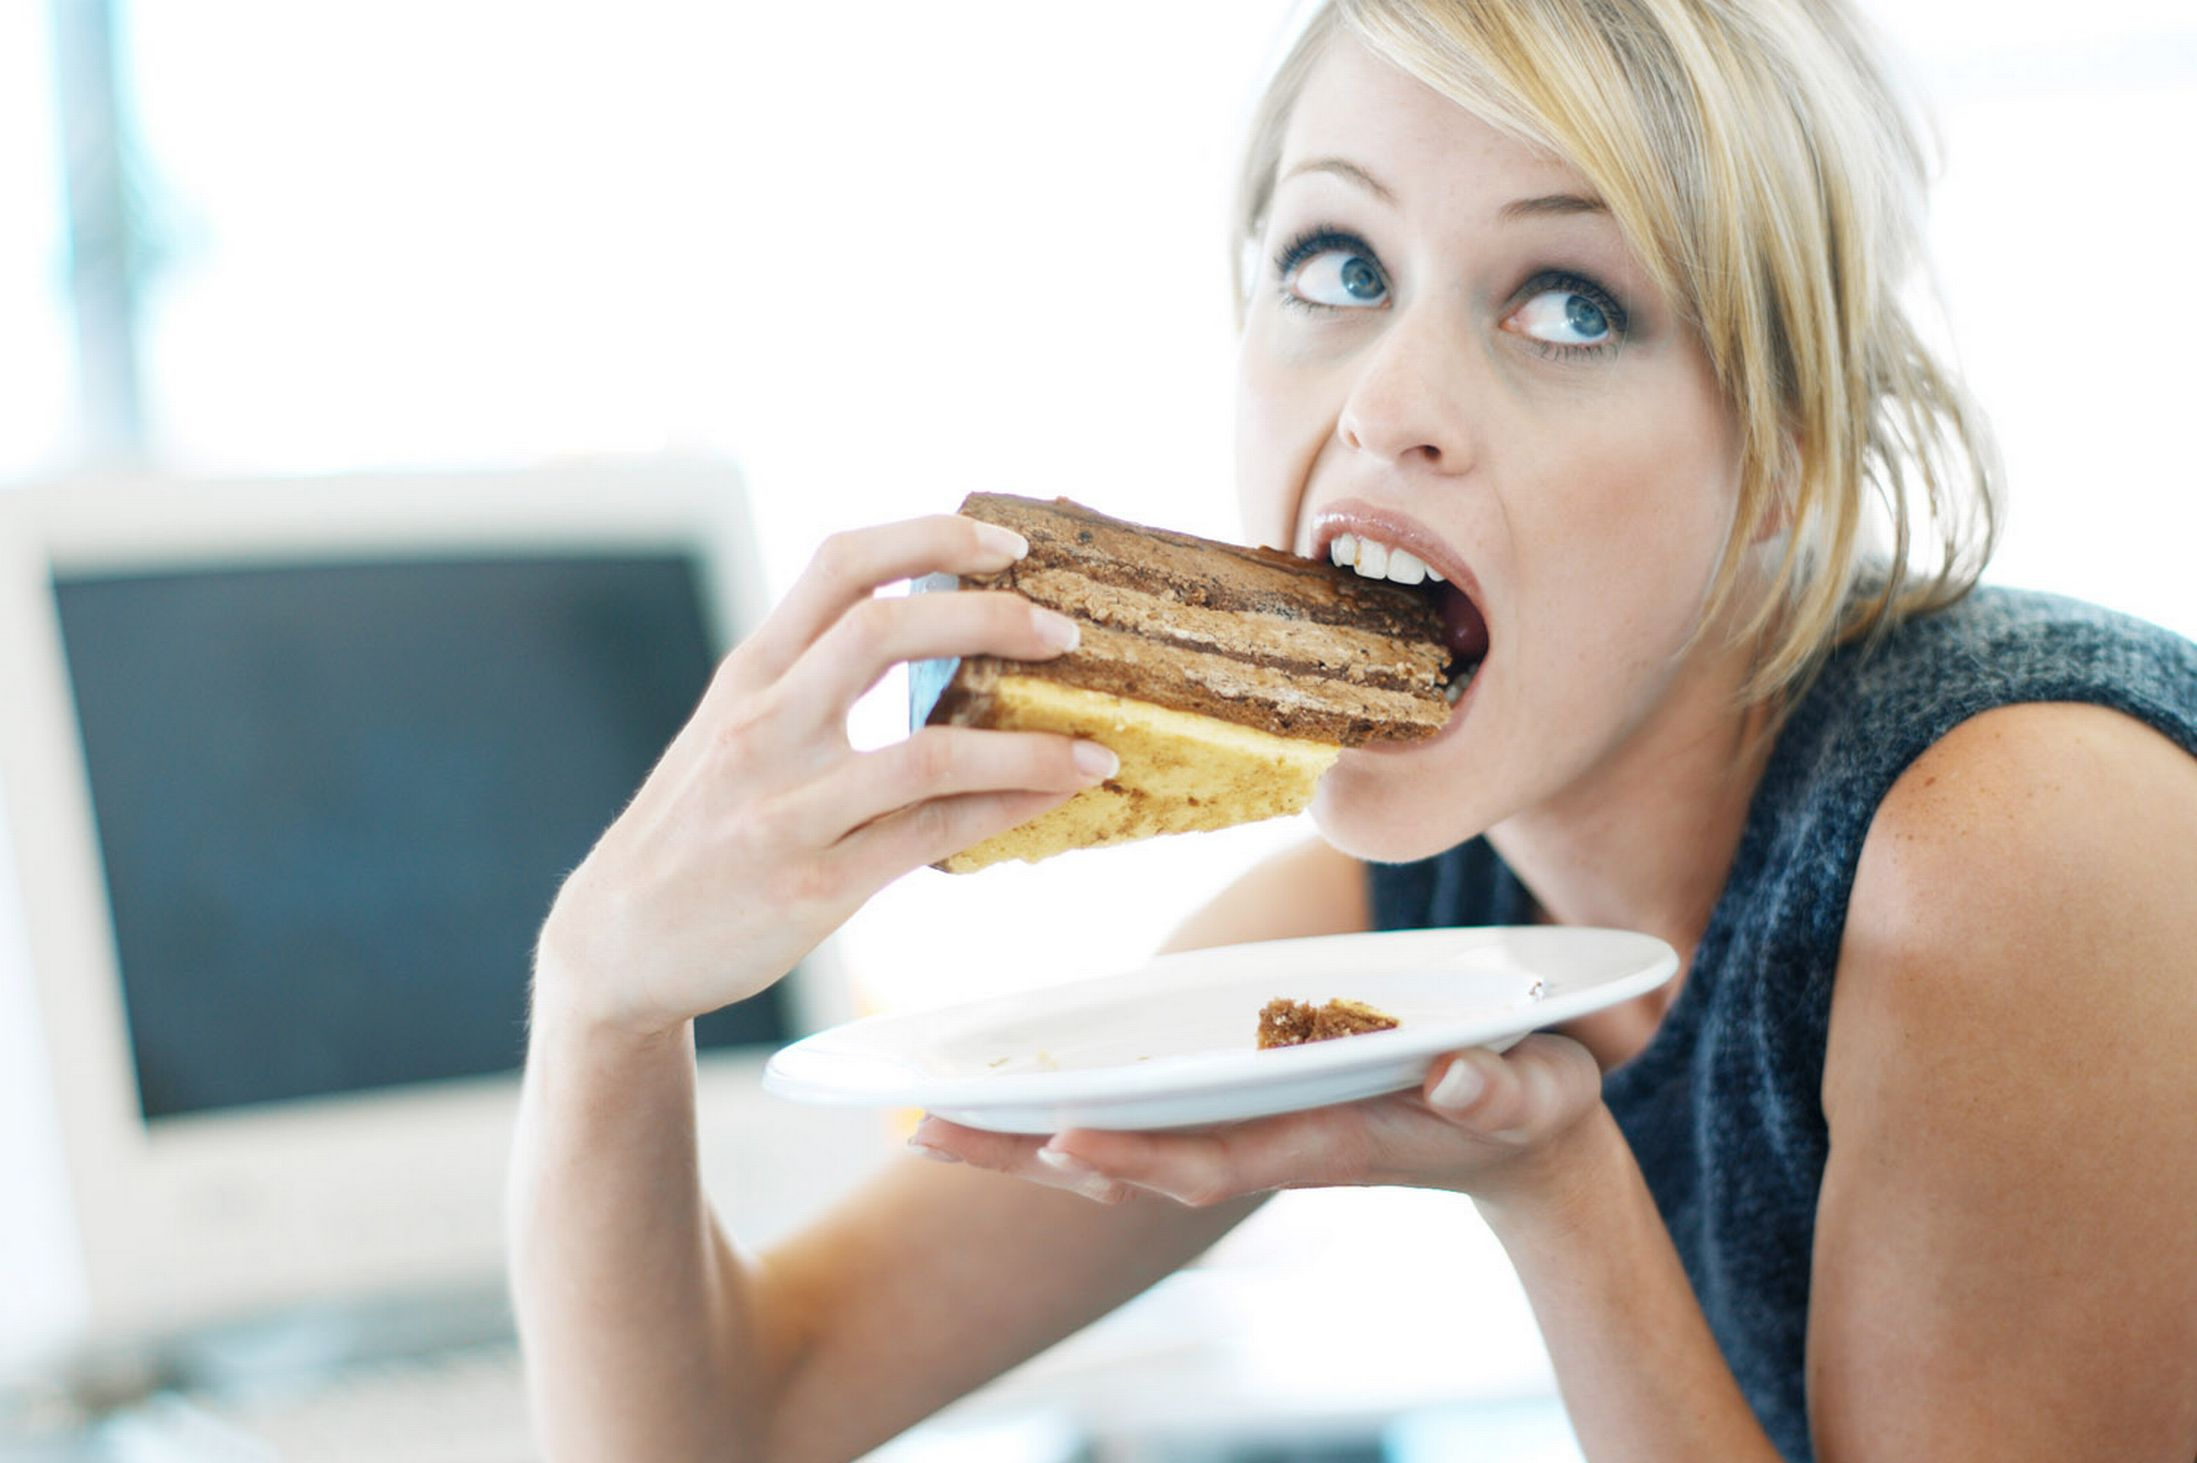 Emotional Eating – What Are Your Triggers?